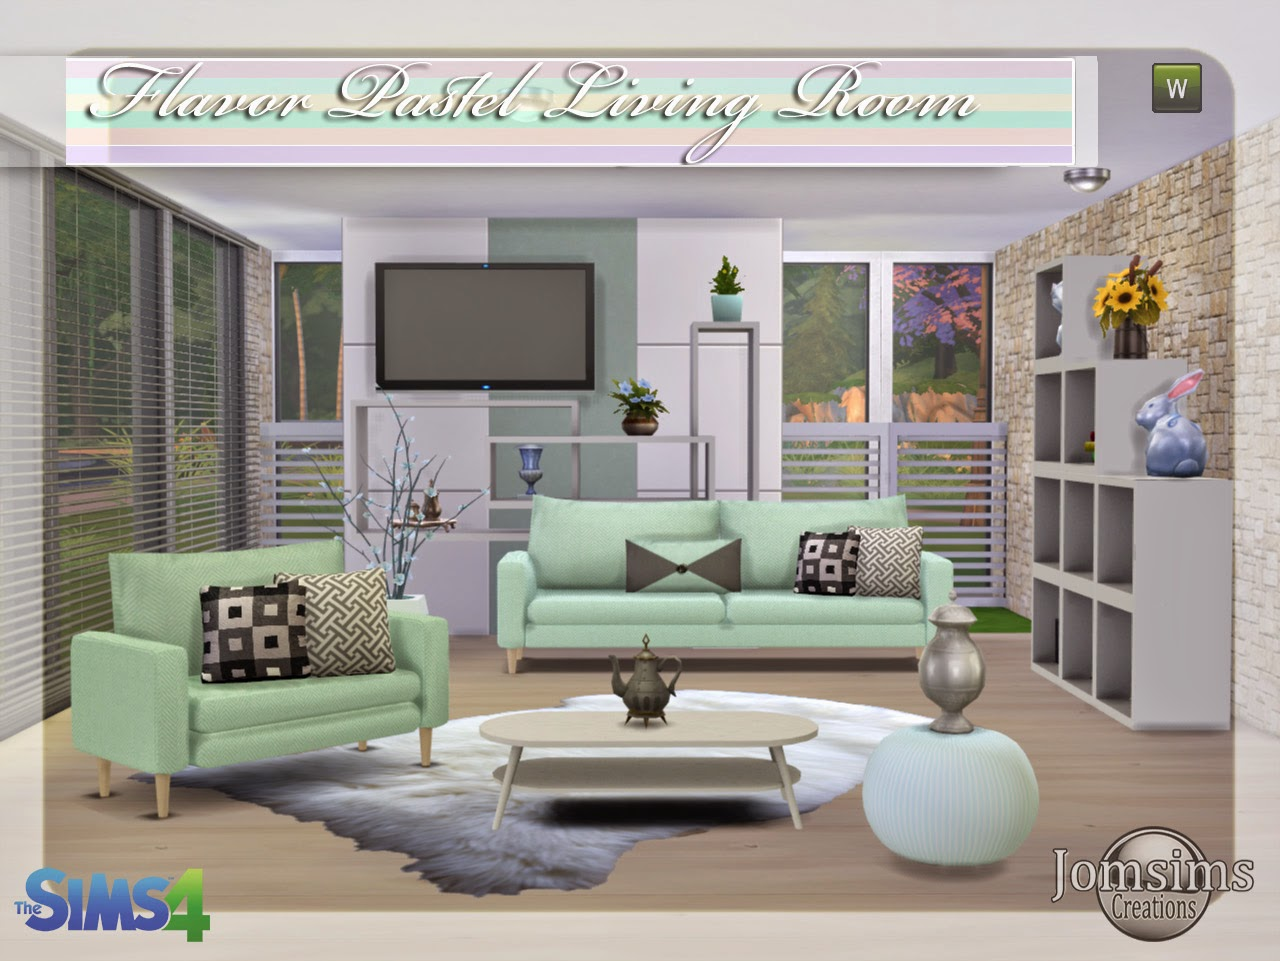 Jomsimscreations blog new living room sims 4 flavor for Living room sims 4